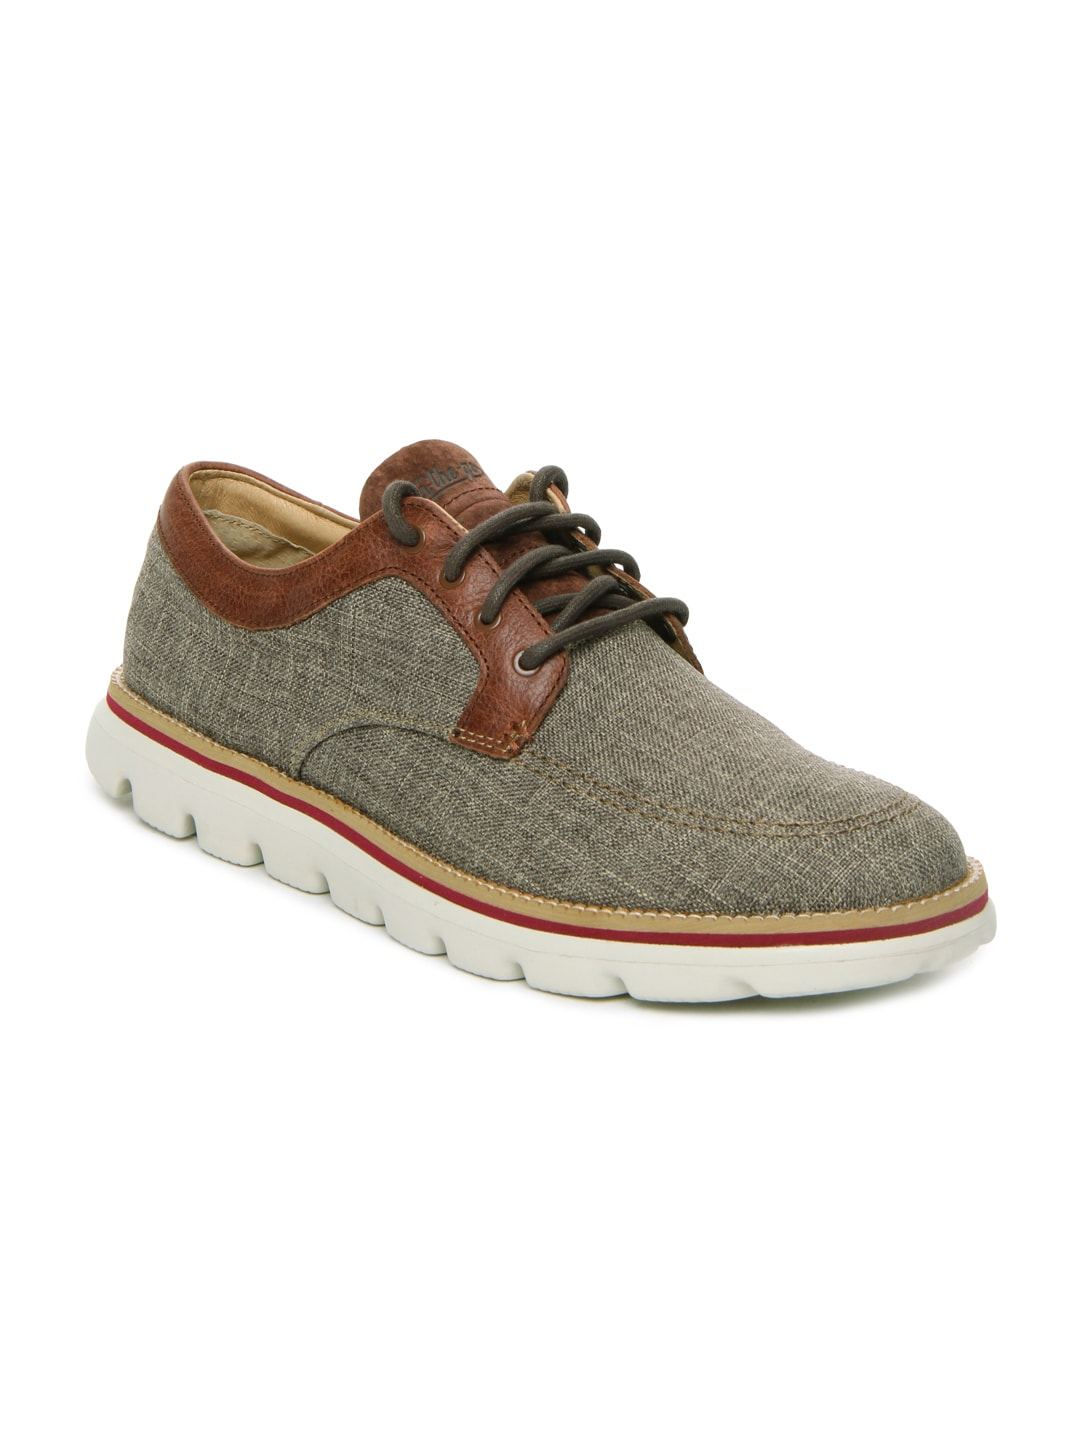 skechers casual shoes for men